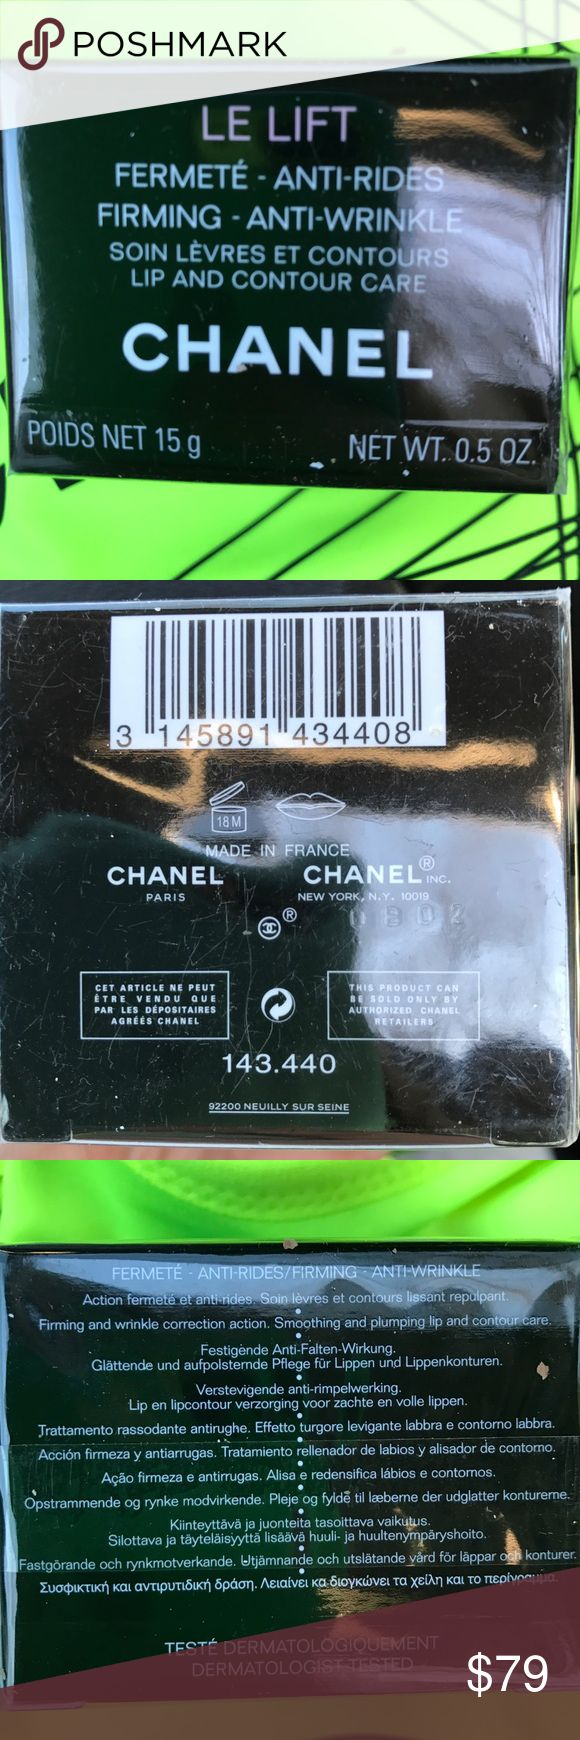 BNWT Le lift Chanel firming anti-wrinkle 15g New inbox and covered in it's plastic Chanel anti-wrinkle firming lotion lip and Contour care CHANEL Makeup